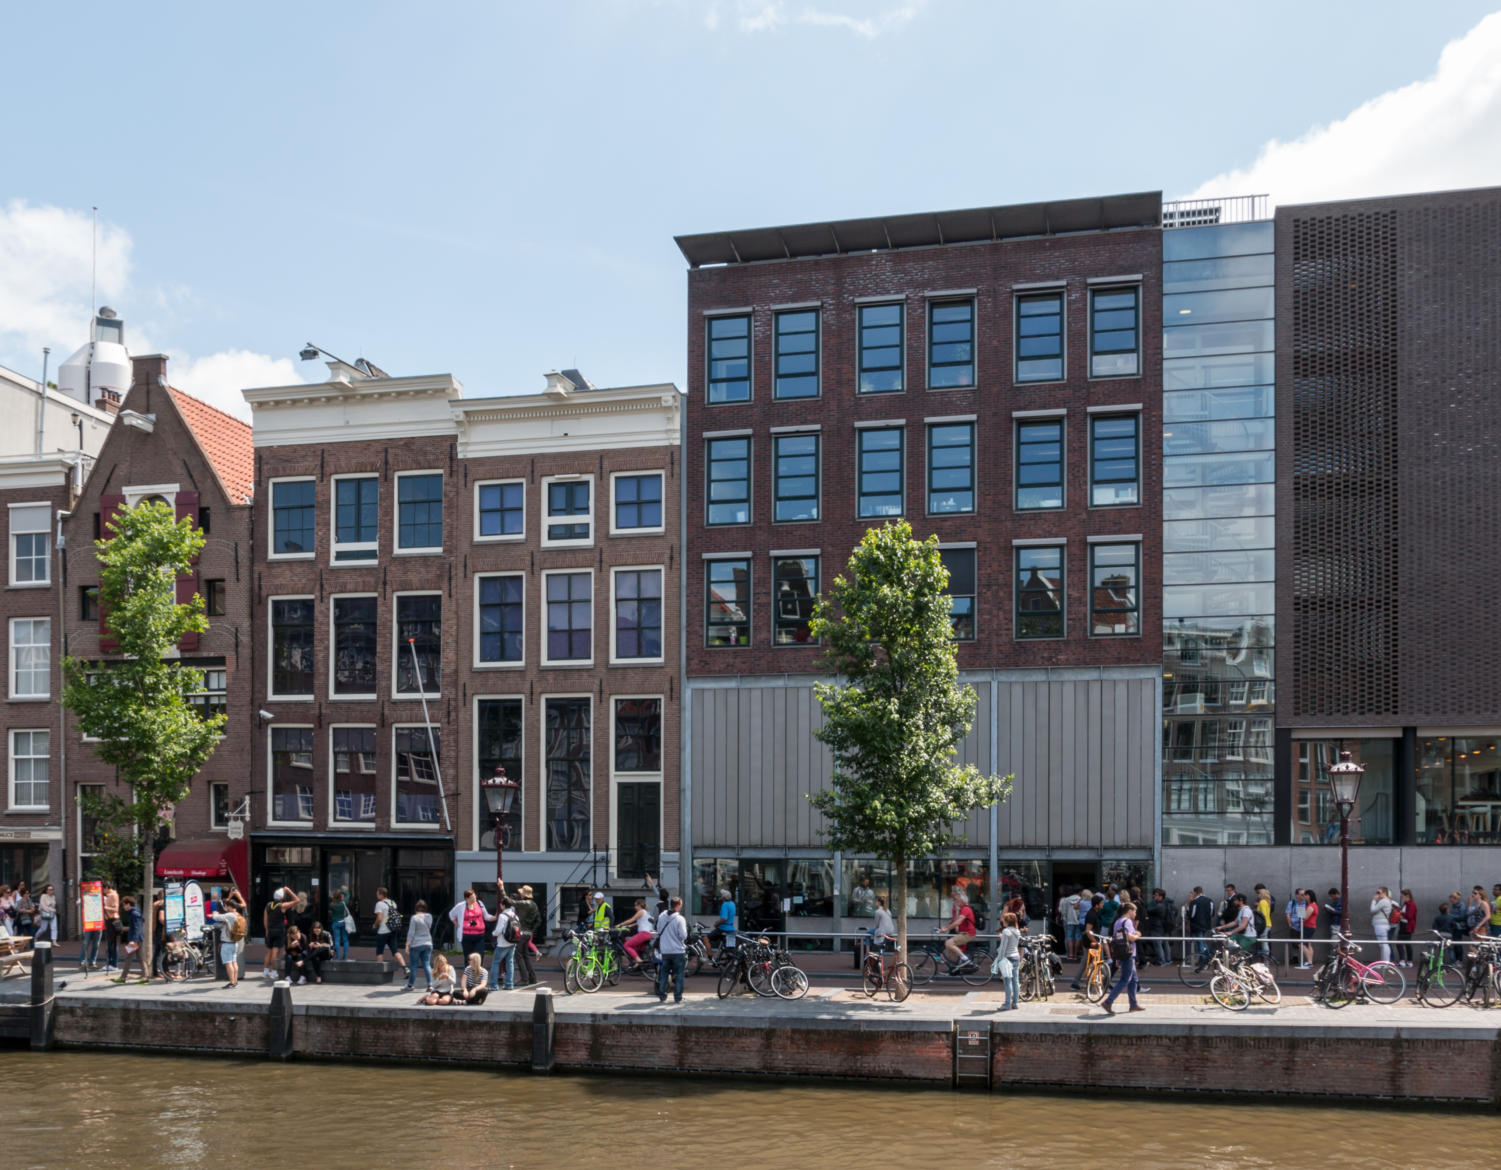 The Anne Frank house in Amsterdam is one of the many places students will be visiting over the course of the trip.